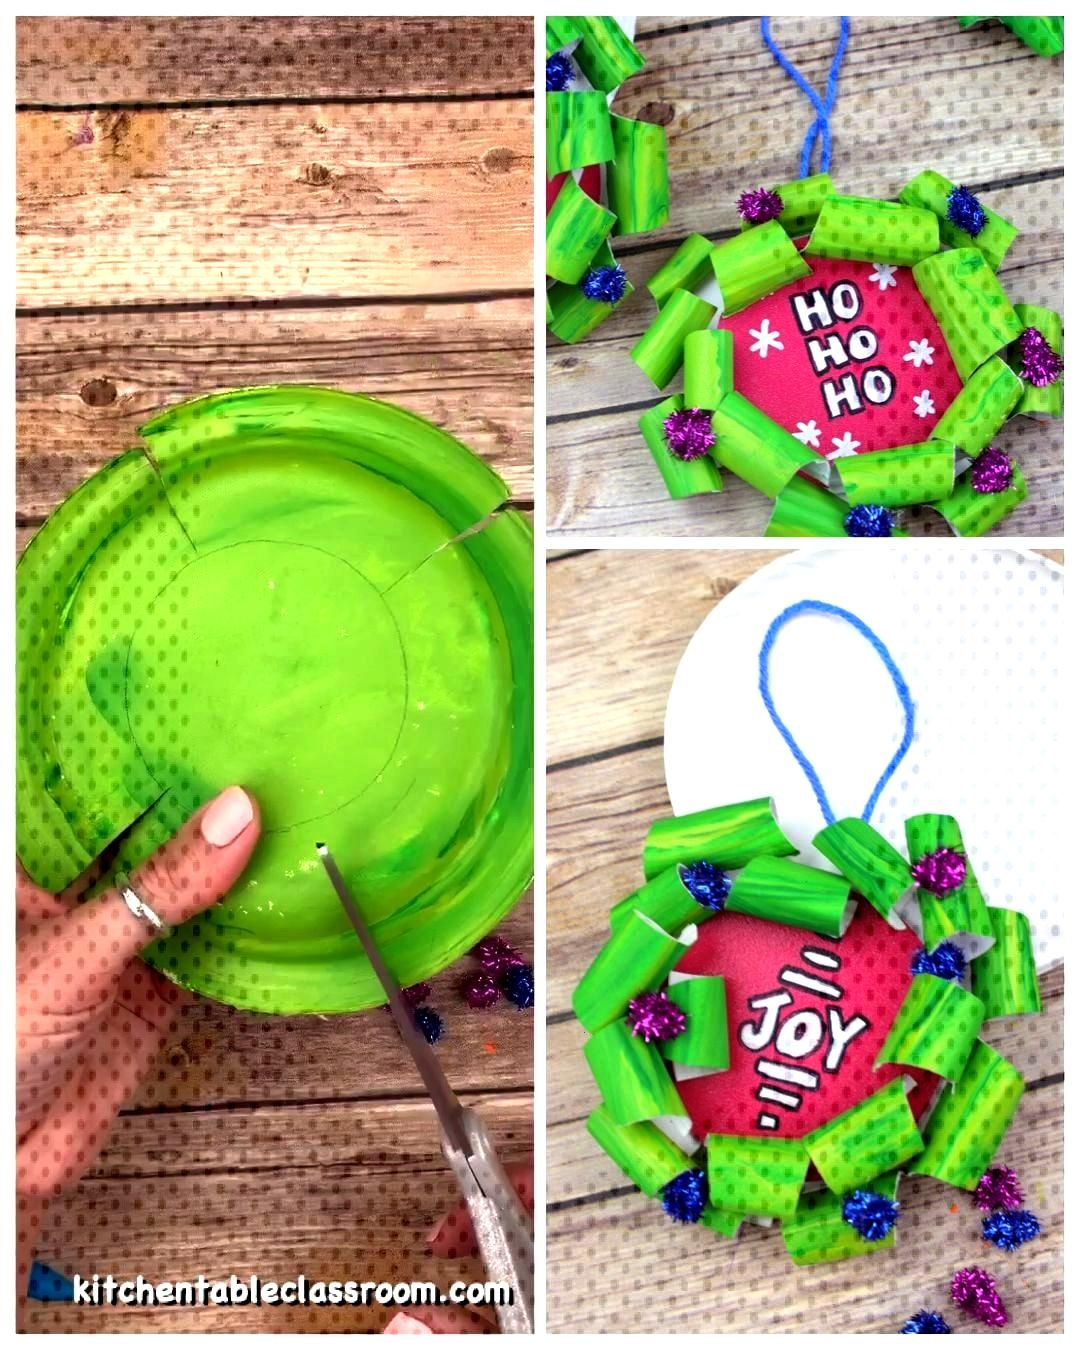 Paper Plate Christmas Wreath - The Kitchen Table Classroom Paper Plate Christmas Wreath - The Kitch